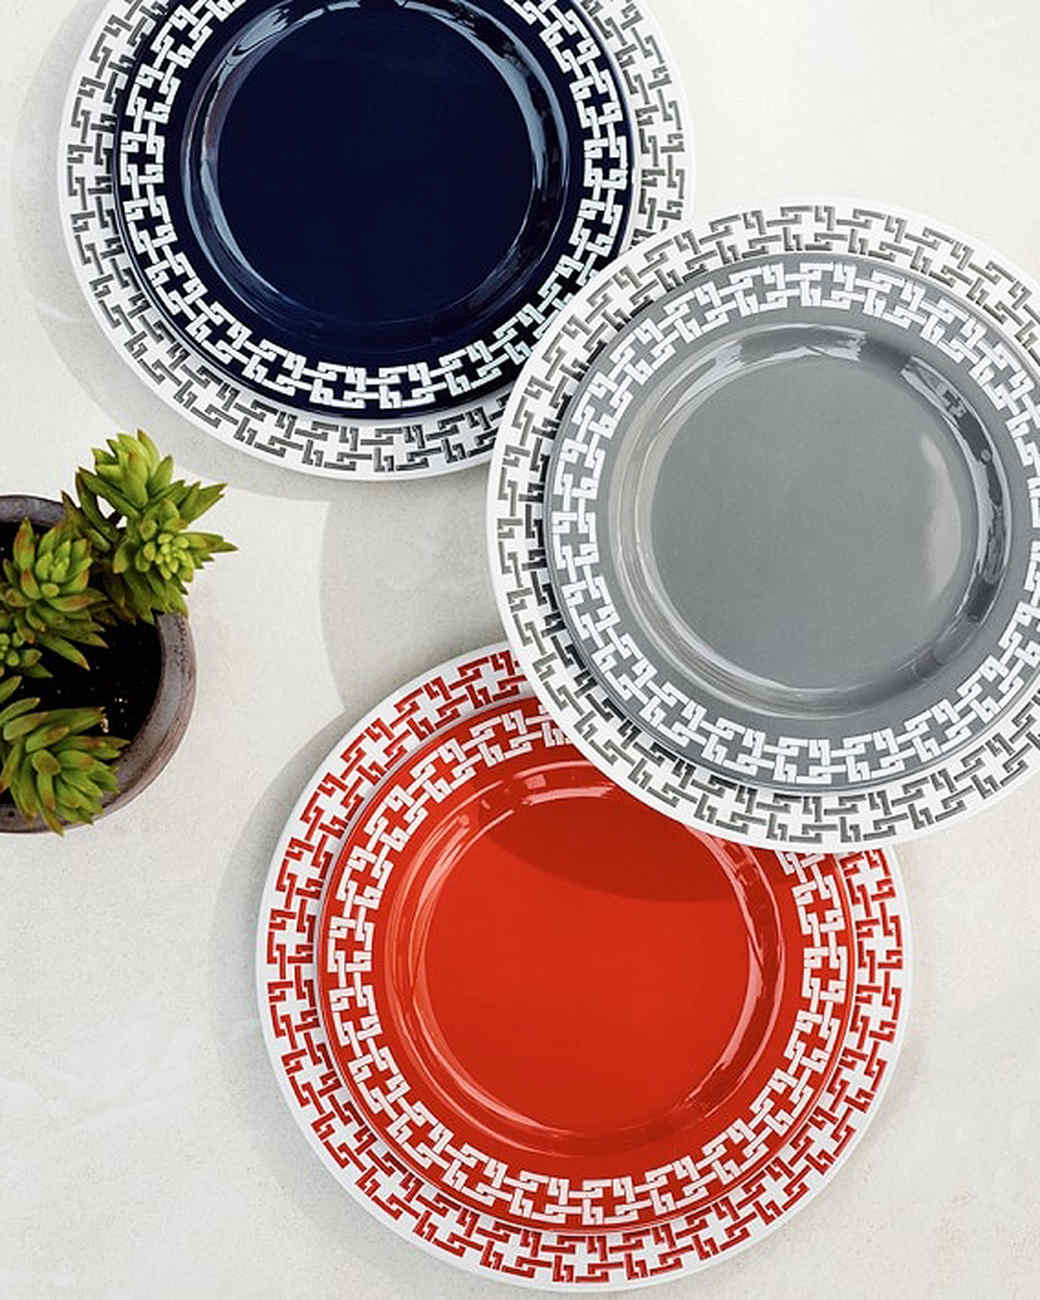 williams-sonoma-dinner-plates.jpg